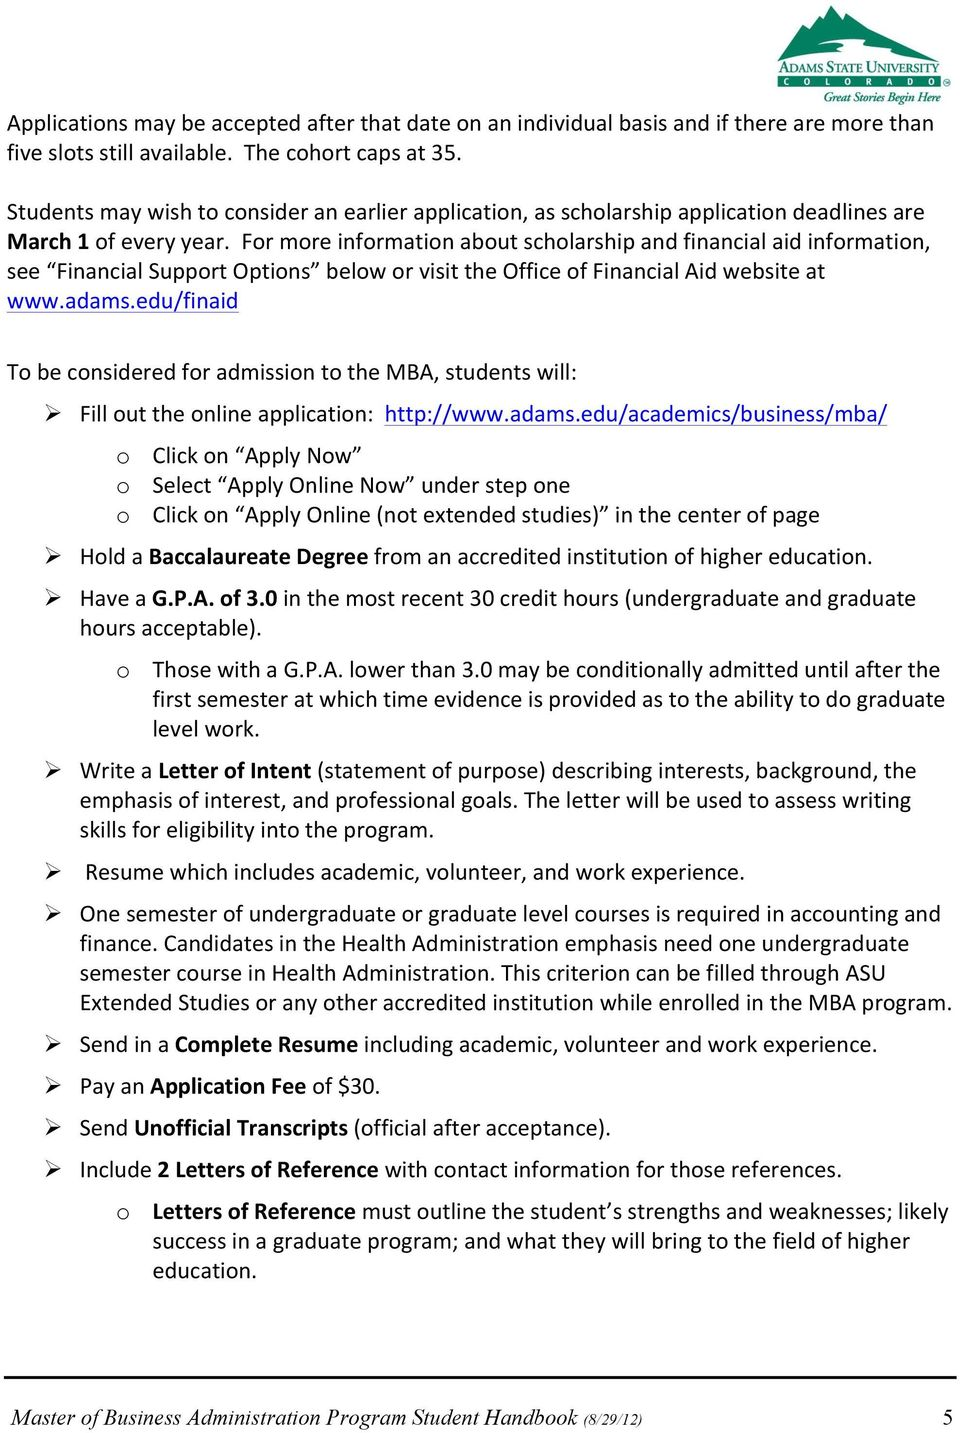 For more information about scholarship and financial aid information, see Financial Support Options below or visit the Office of Financial Aid website at www.adams.